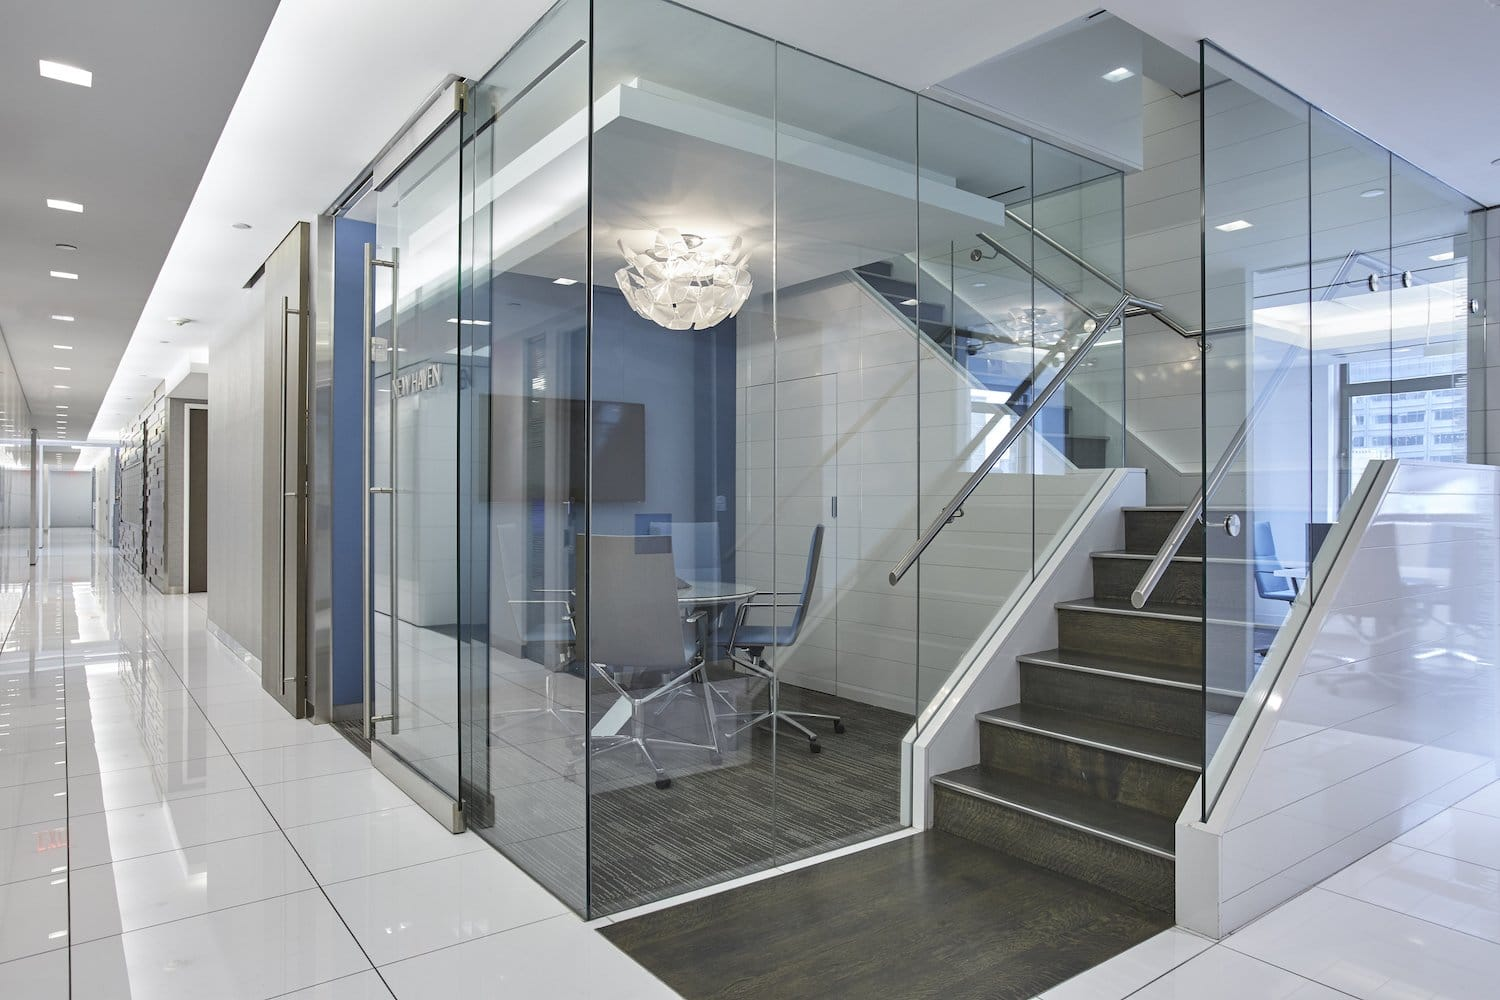 New Haven meeting room behind glass walls, side angle